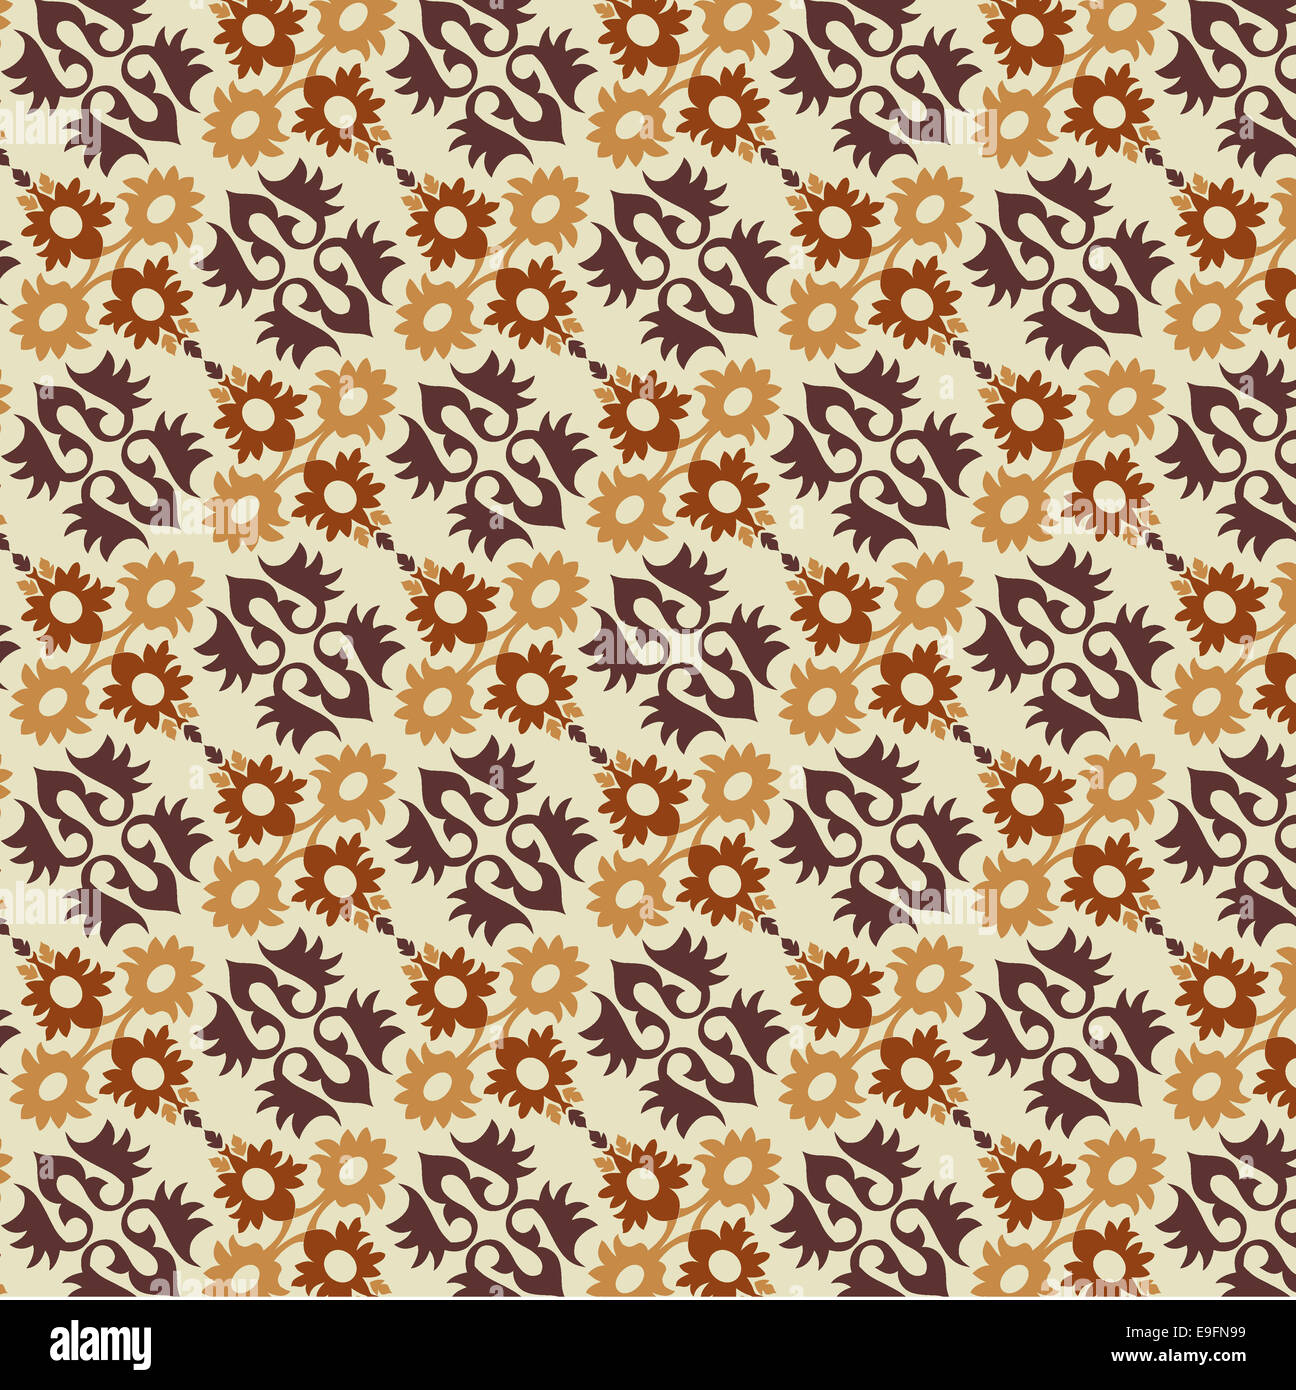 ottoman seamless pattern version - Stock Image